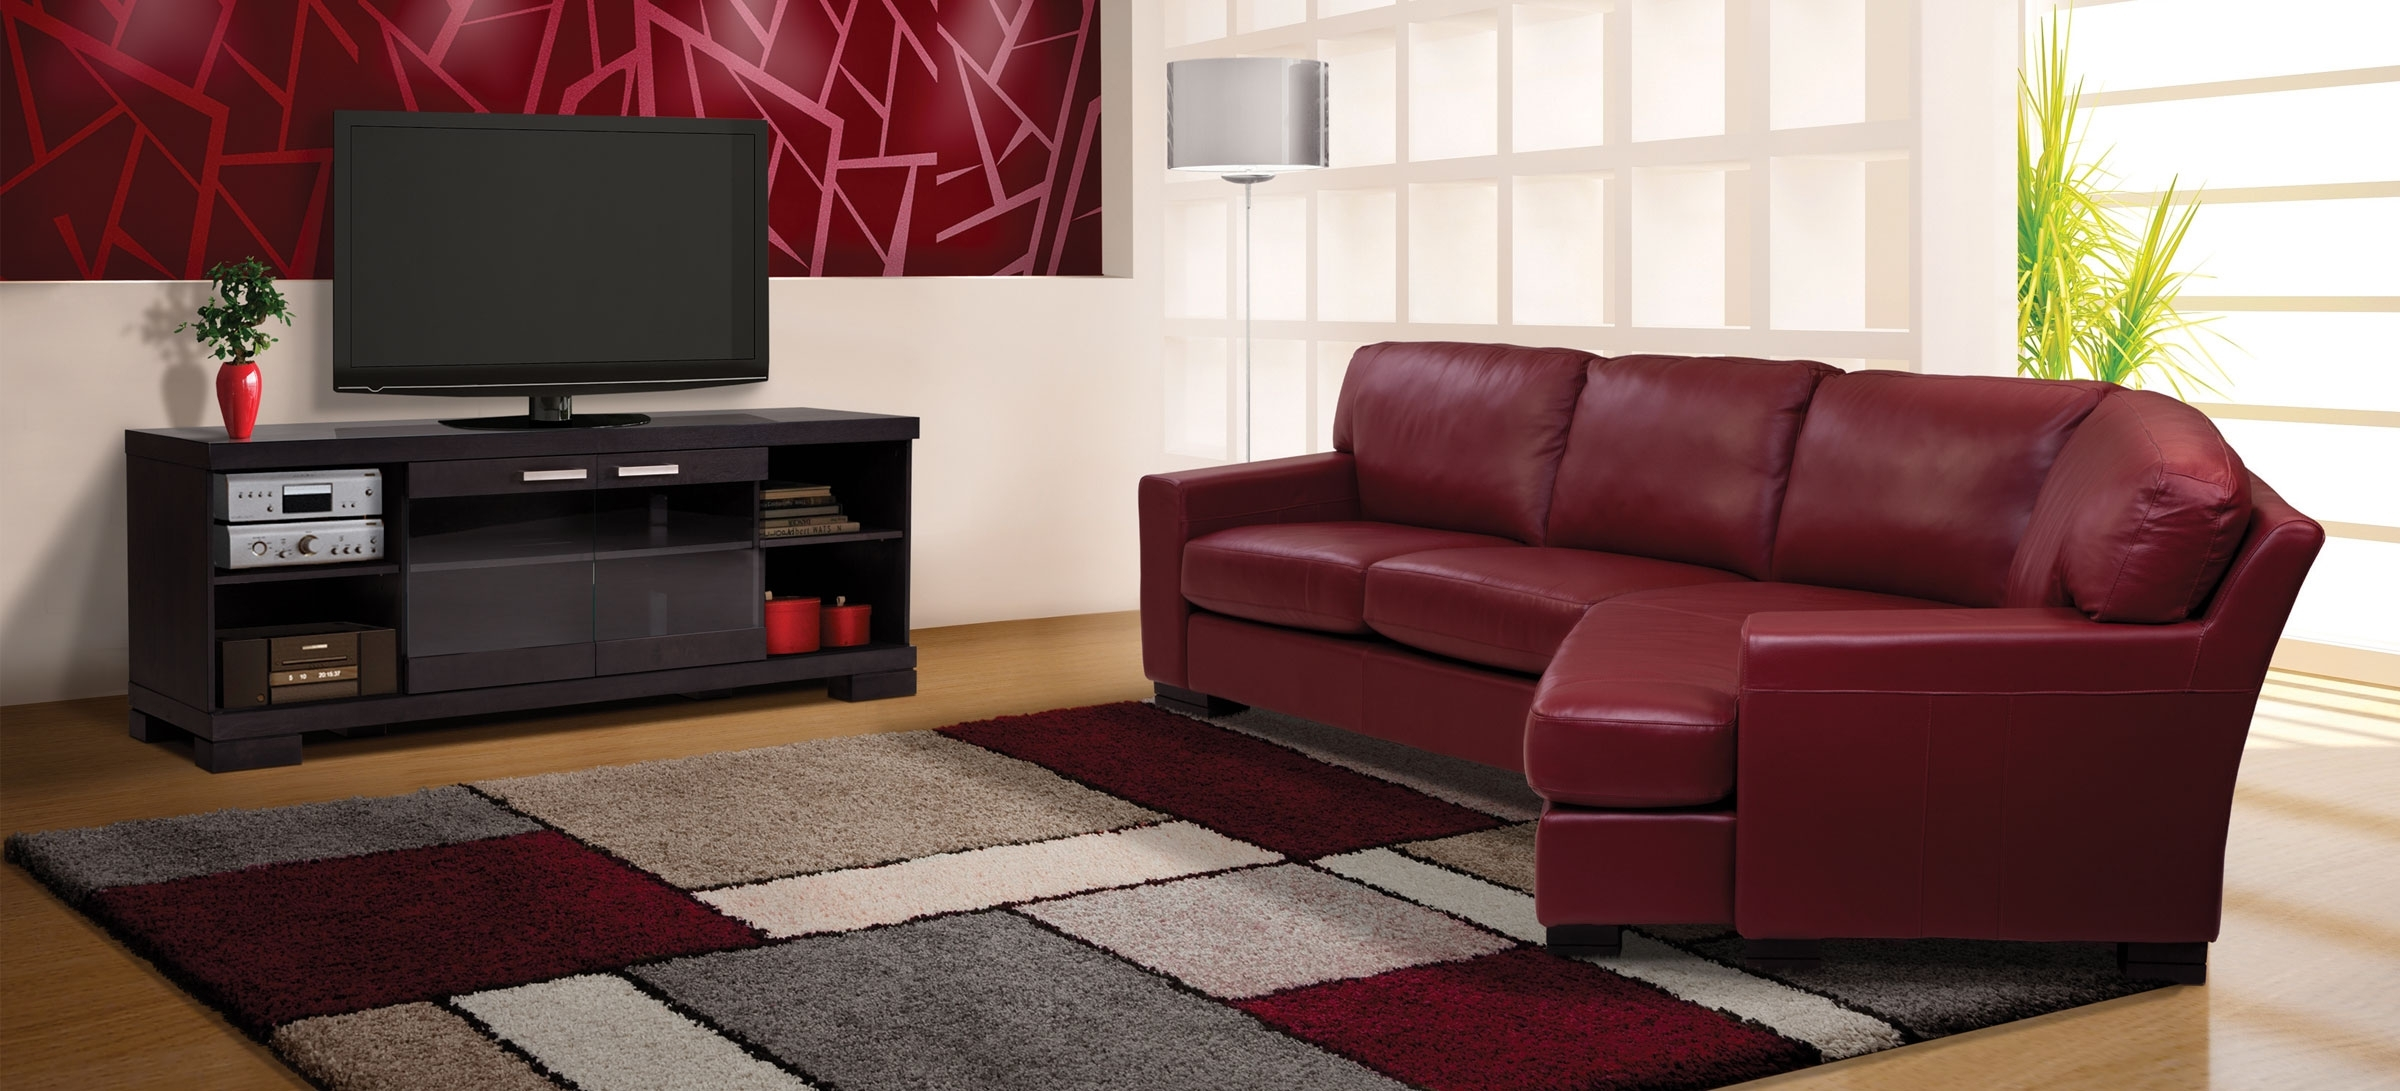 Popular Sectional Sofas For Condos Intended For Apartment Sofa Condo – Contemporary Style – Jaymar Collection (View 17 of 20)